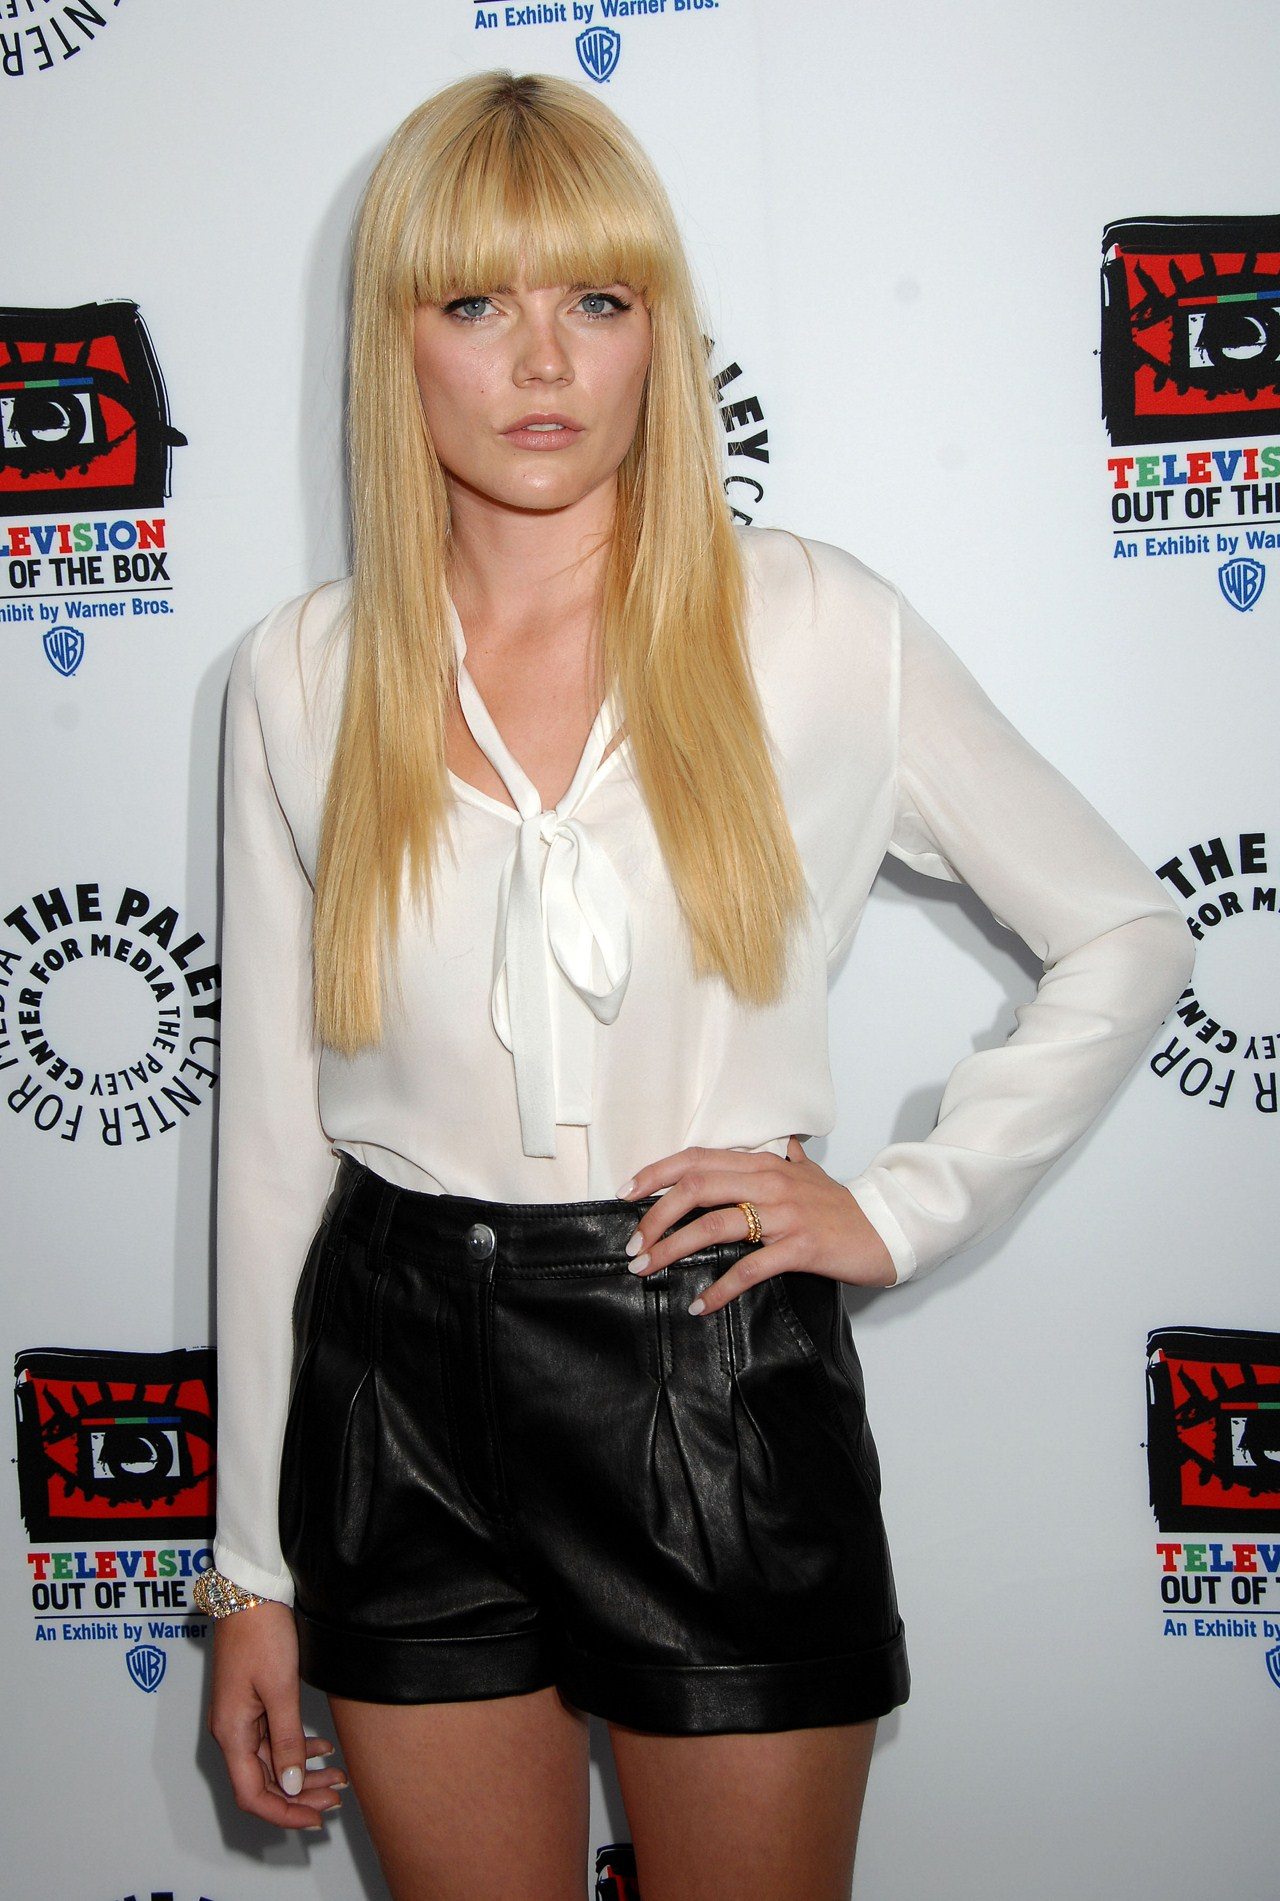 225046374_emma_greenwell_paley_center_s_opening_of_television_out_of_the_box__123_142lo.jpg